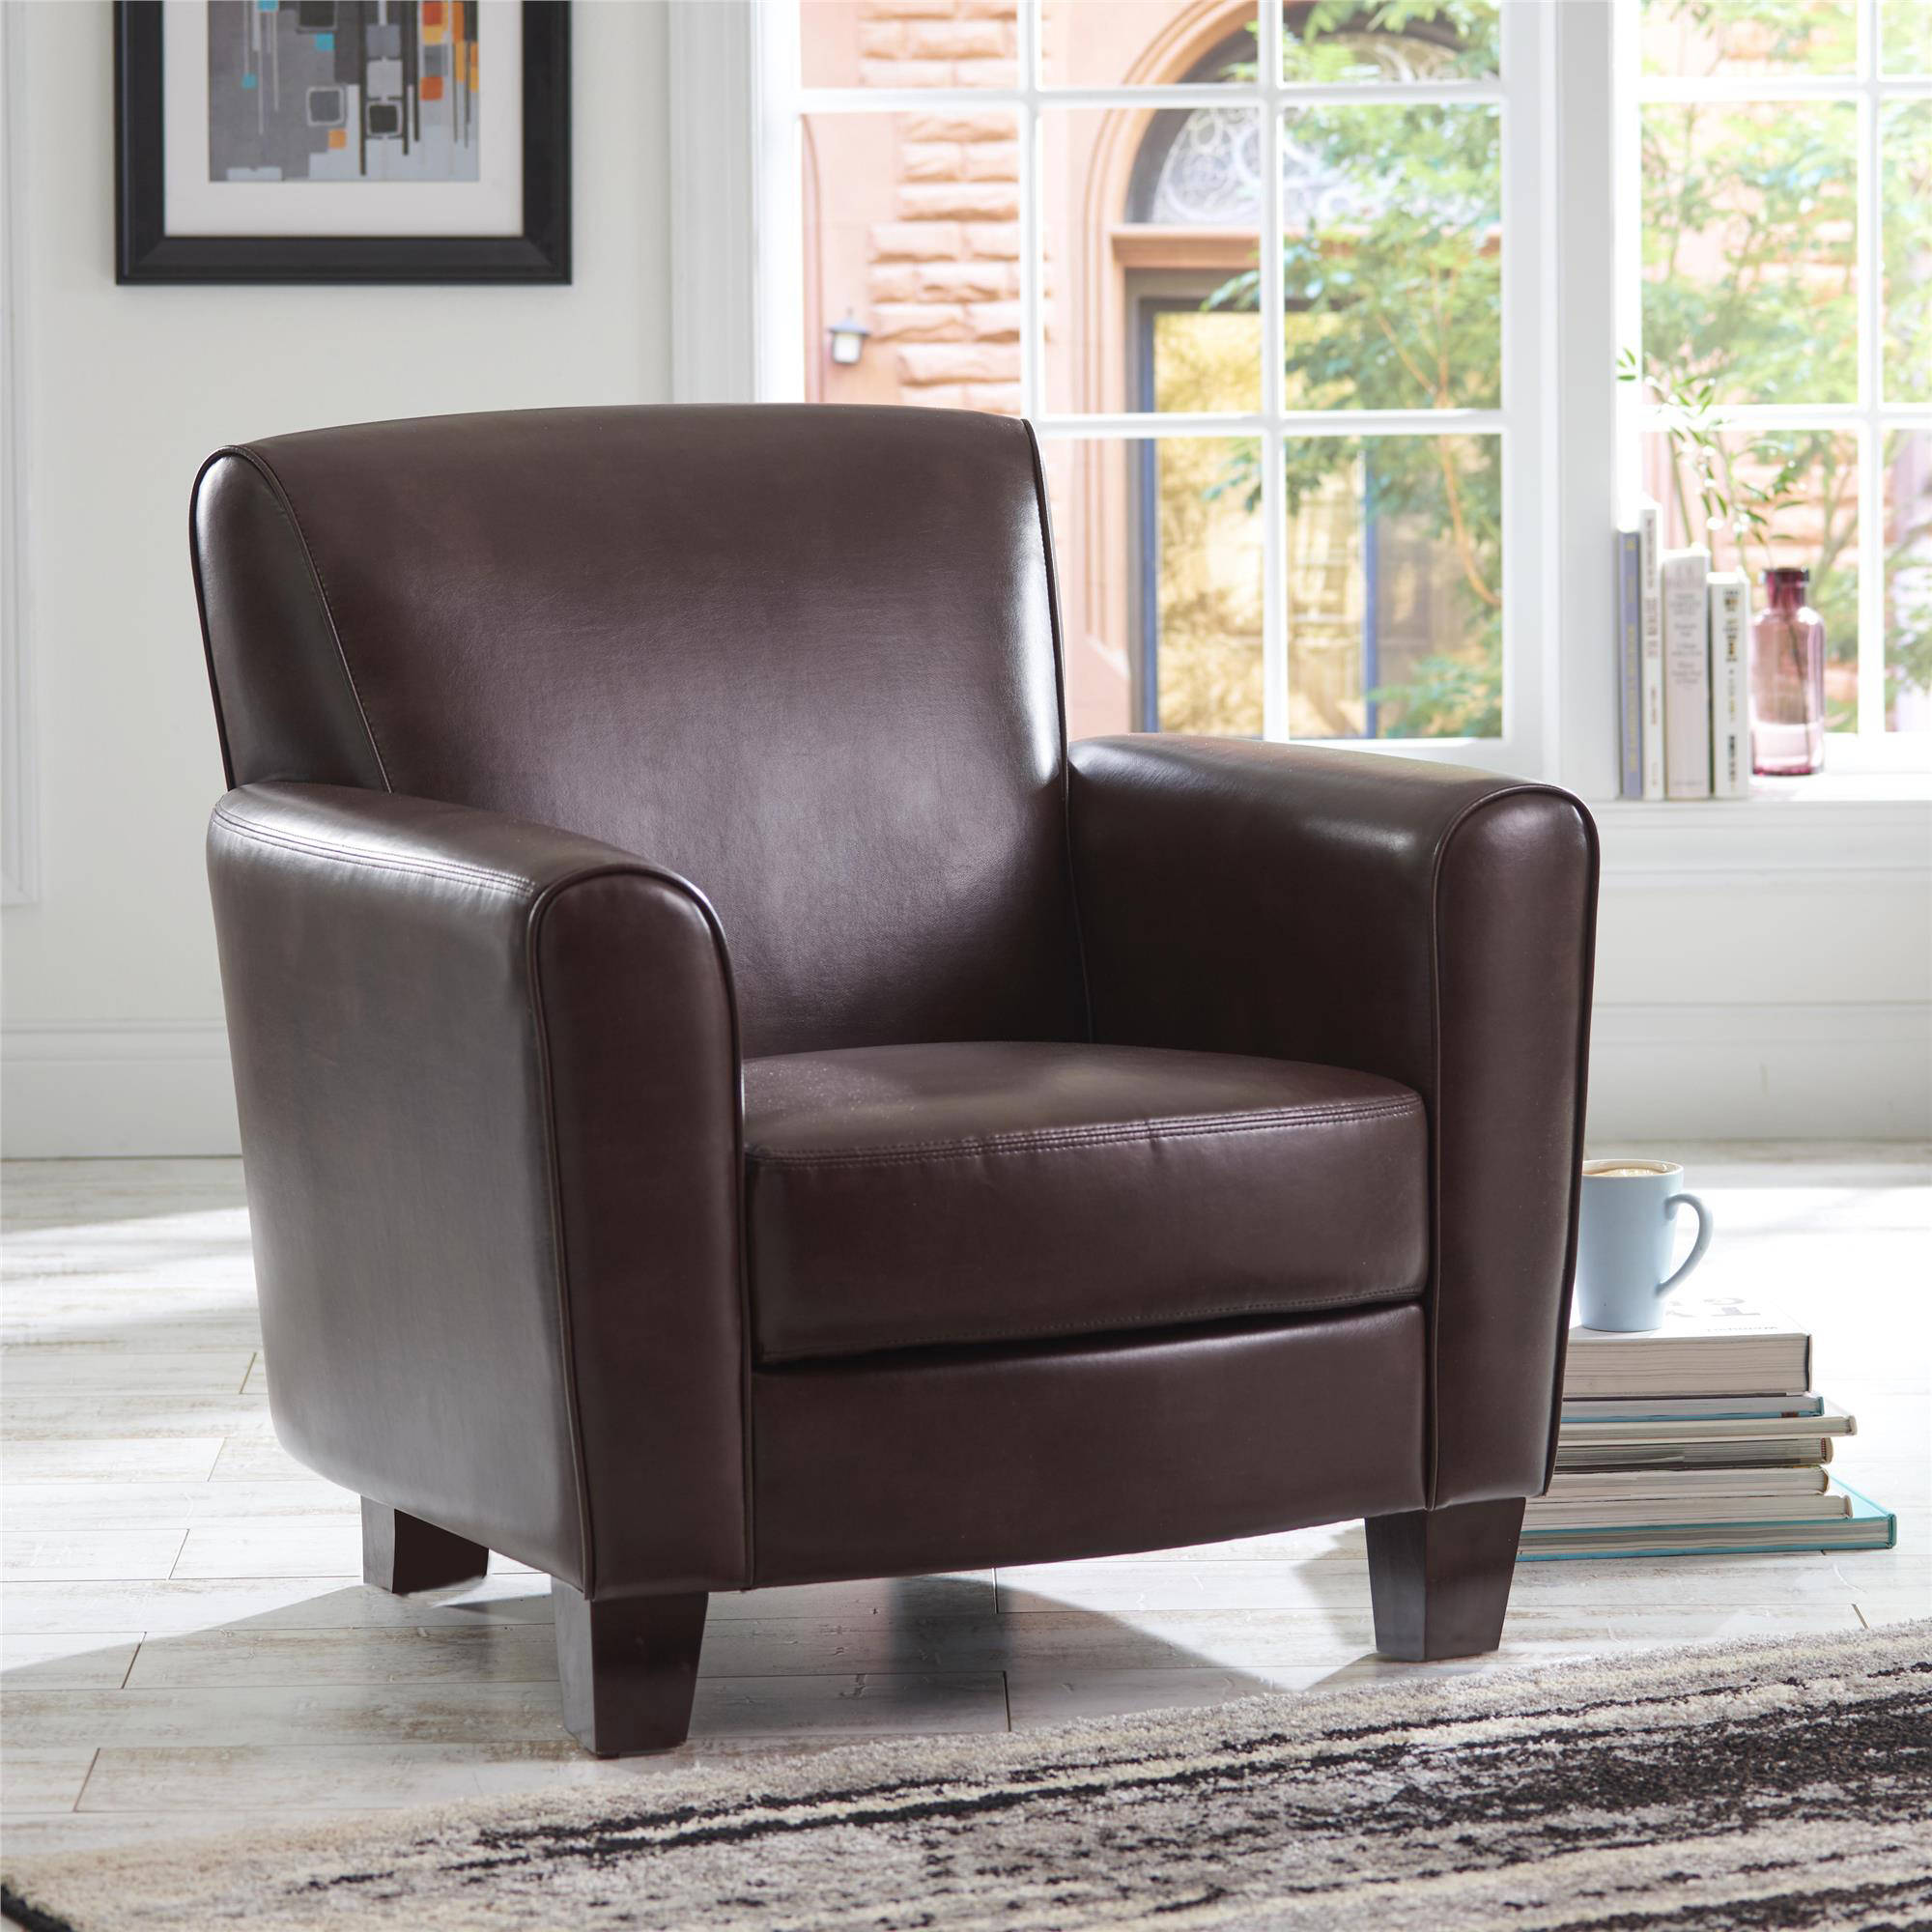 Better homes gardens ellis club chair brown walmart com